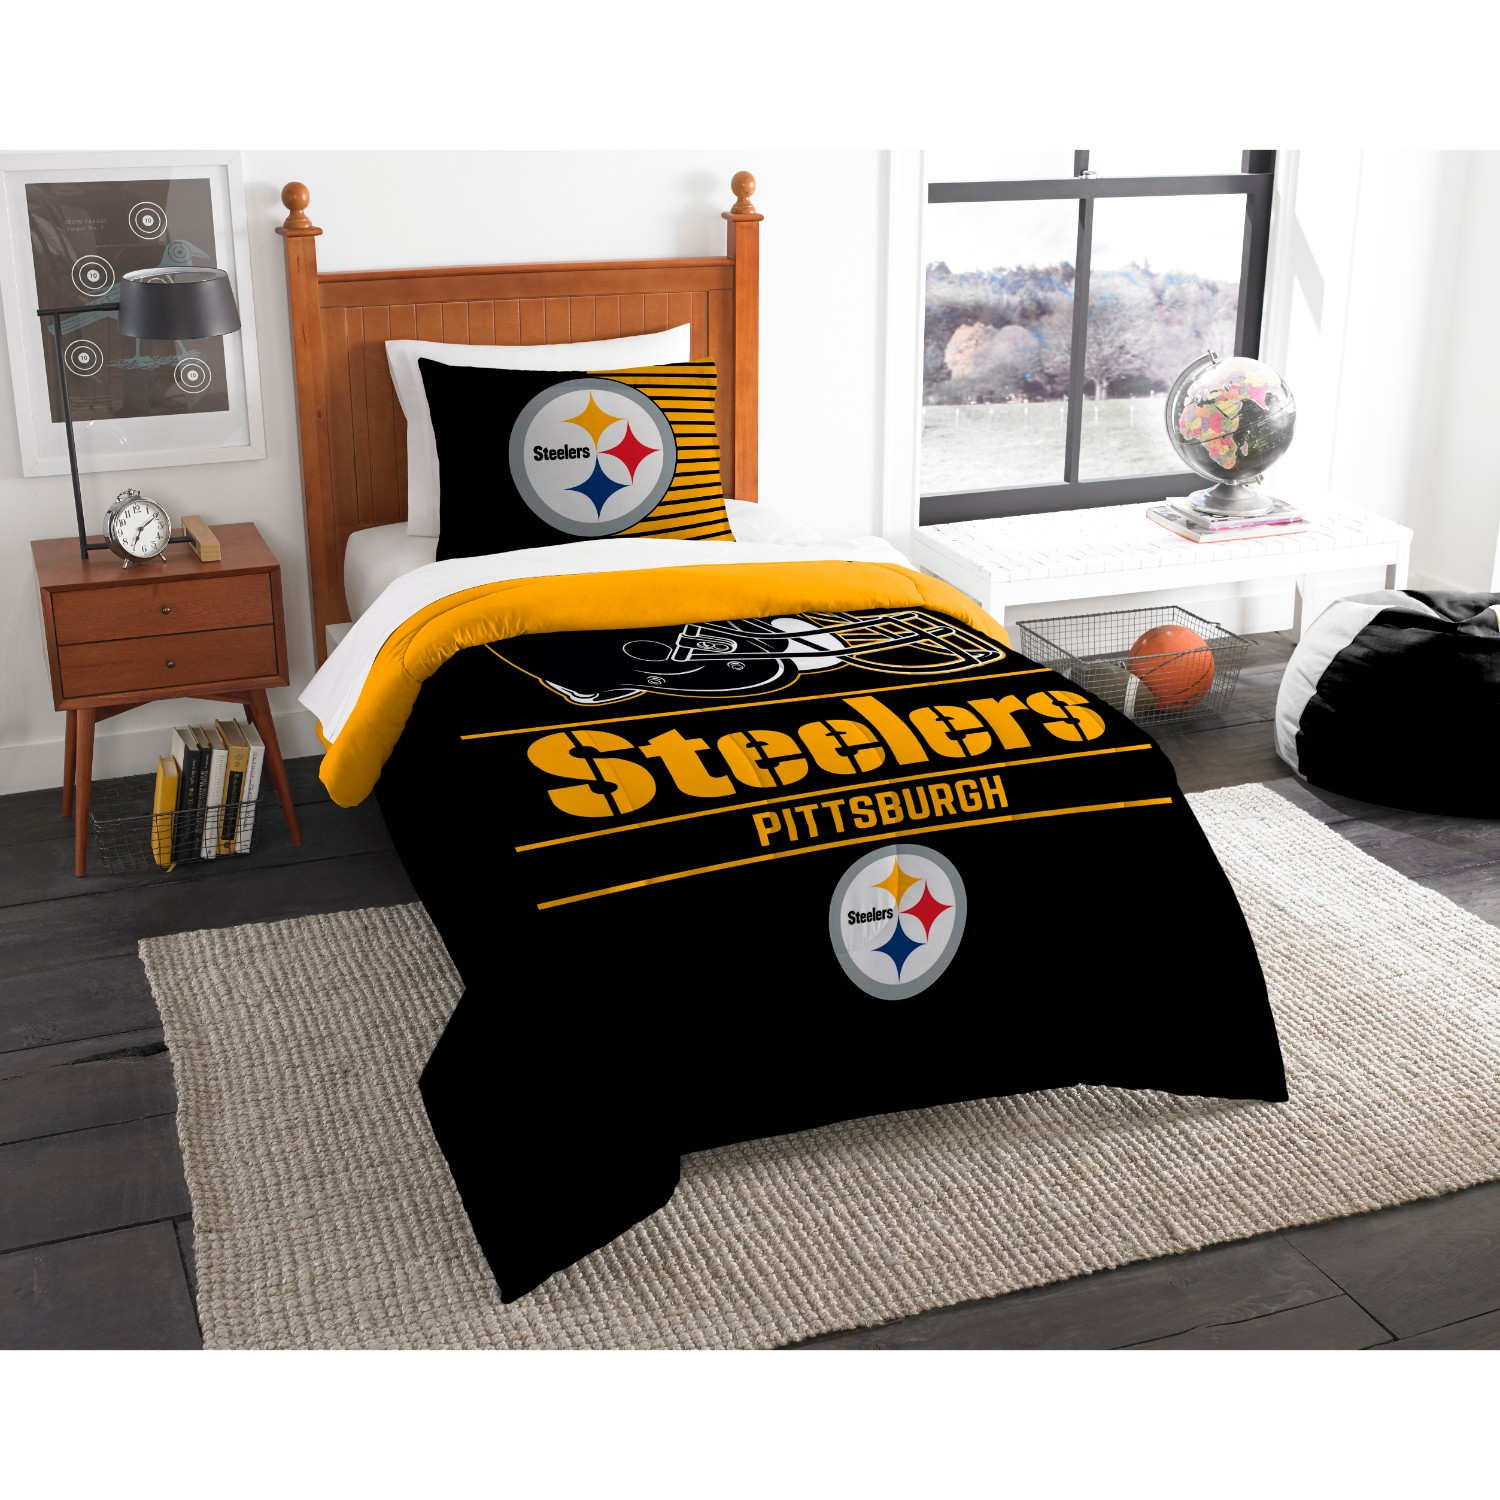 "Steelers OFFICIAL National Football League, Bedding, ""Draft"" Printed Twin Comforter (64""x 86"") & 1 Sham (24""x 30"") Set  by The N"